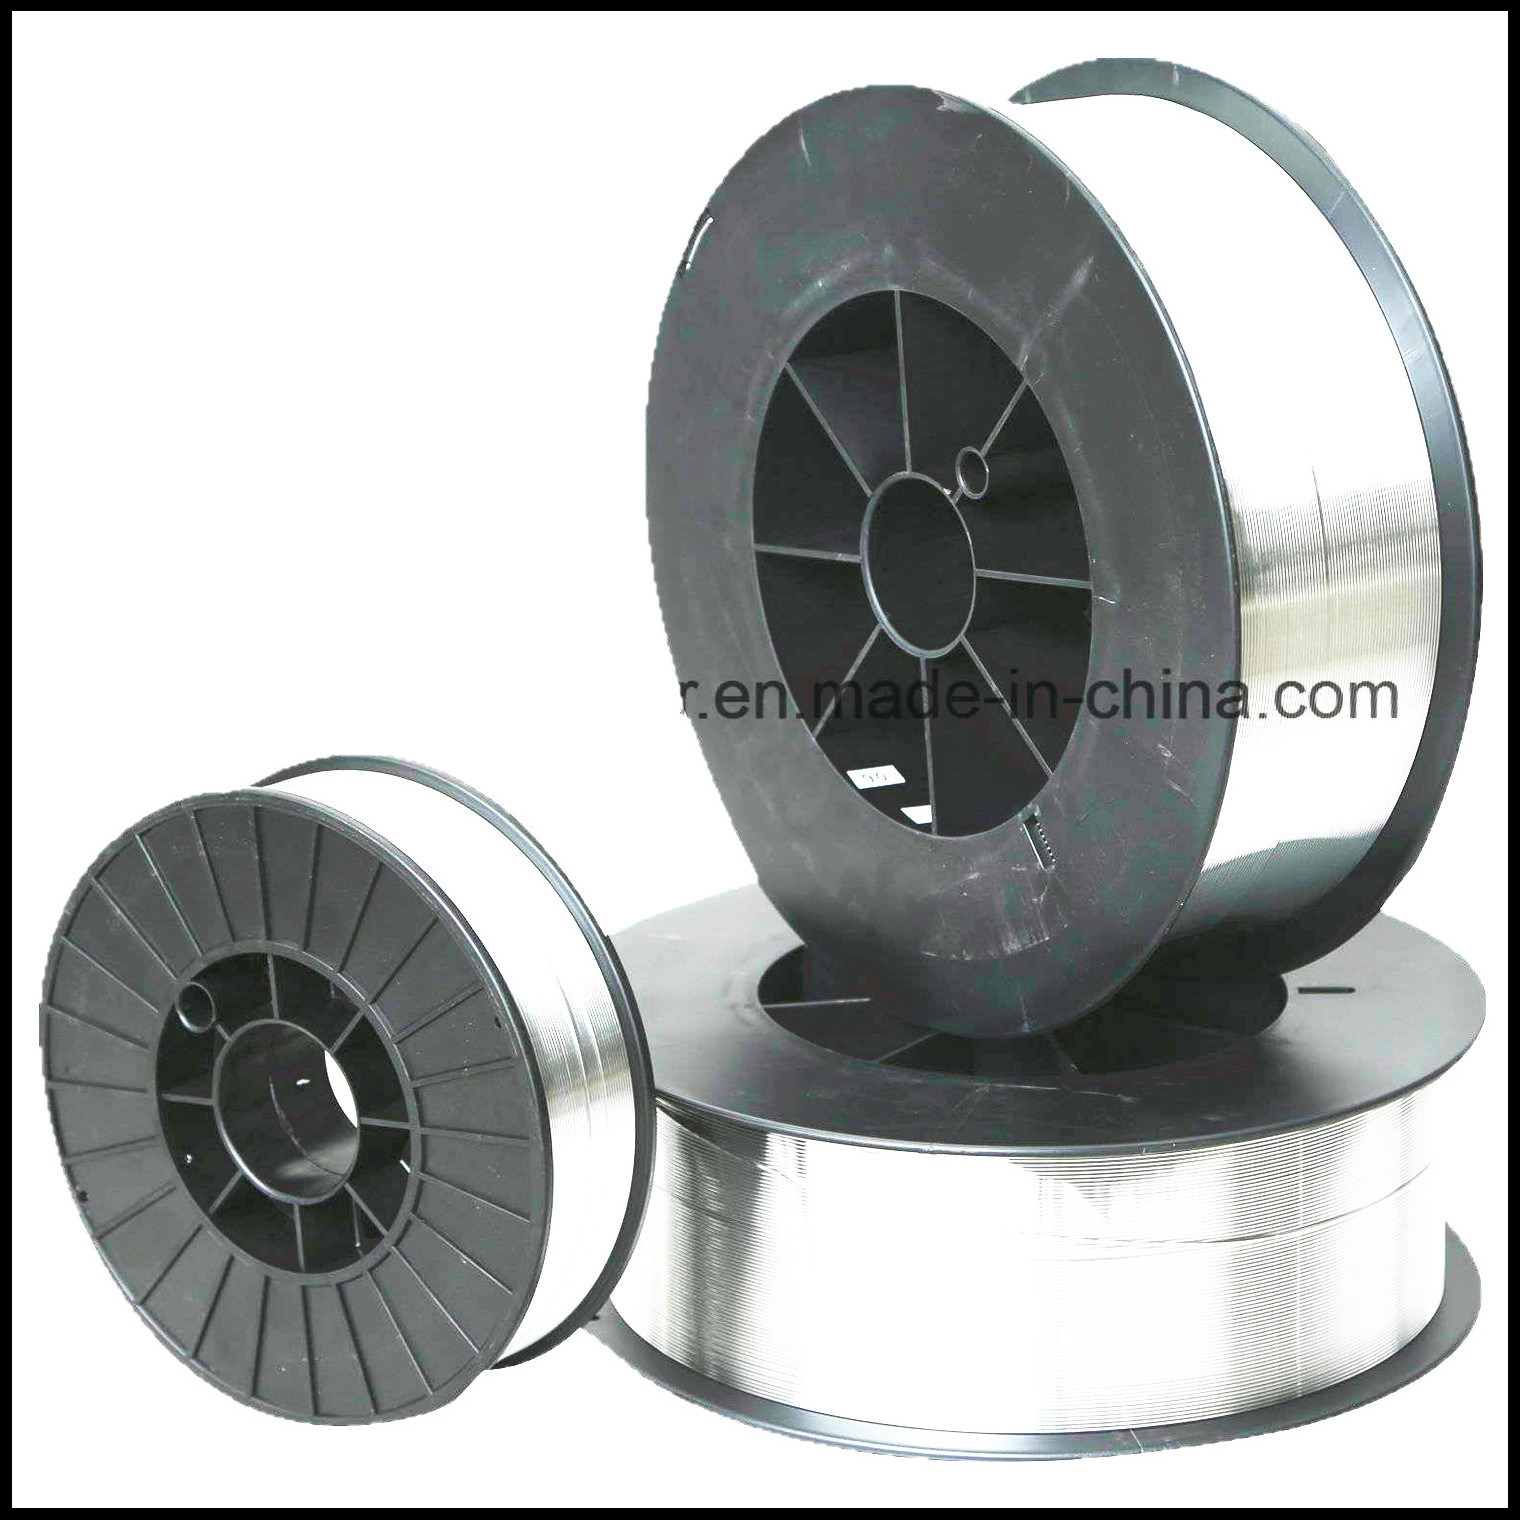 Weld Wire | China 7kg Spool Er5183 Aluminum Alloy Welding Wires Mig Weld Wire